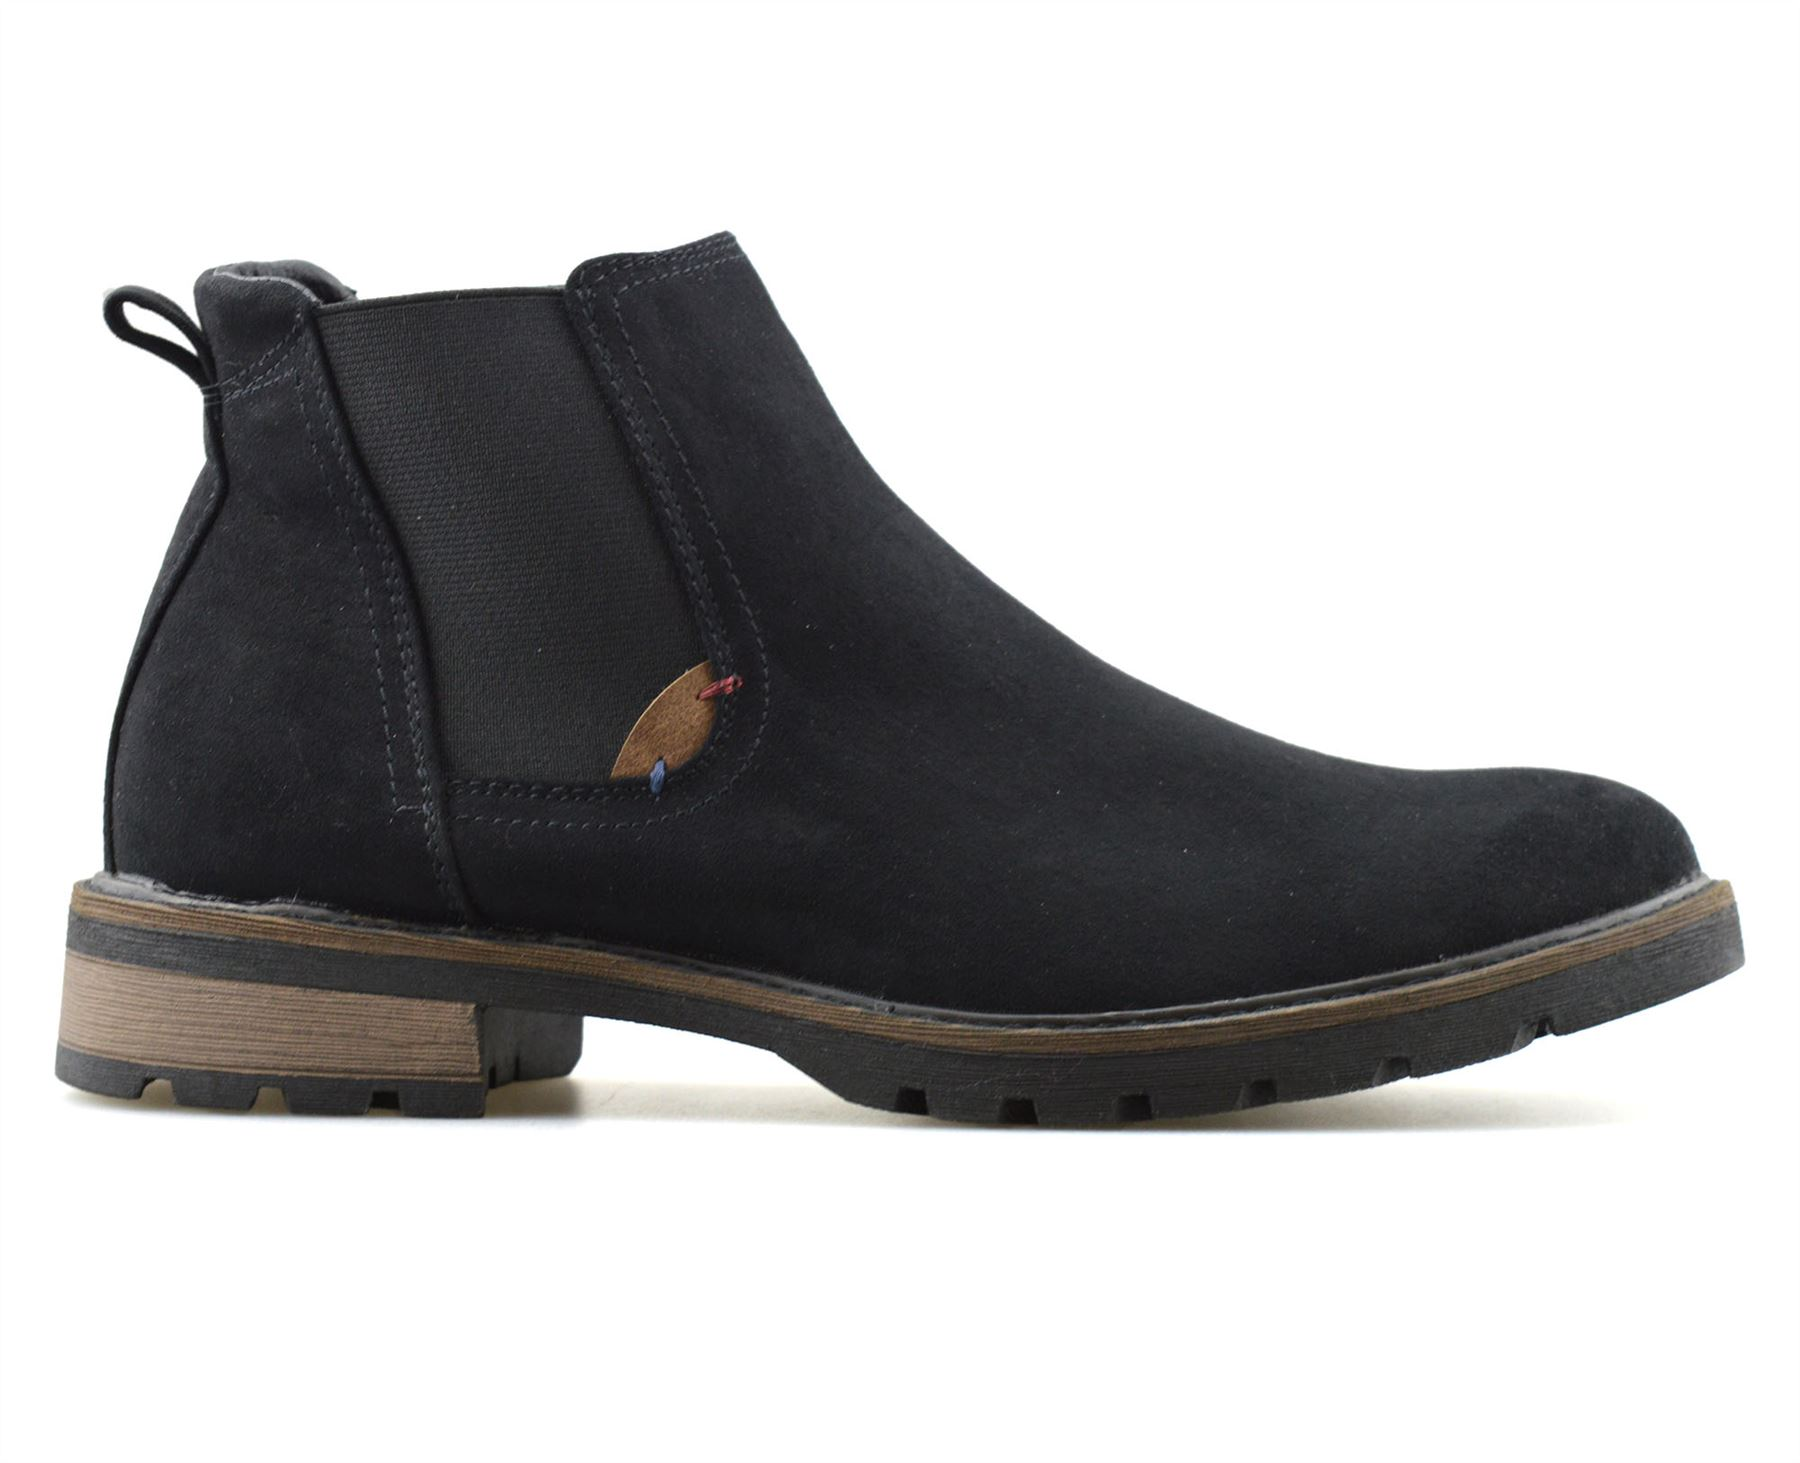 Mens-New-Smart-Formal-Chelsea-Dealer-Casual-Slip-On-Work-Ankle-Boots-Shoes-Size thumbnail 8